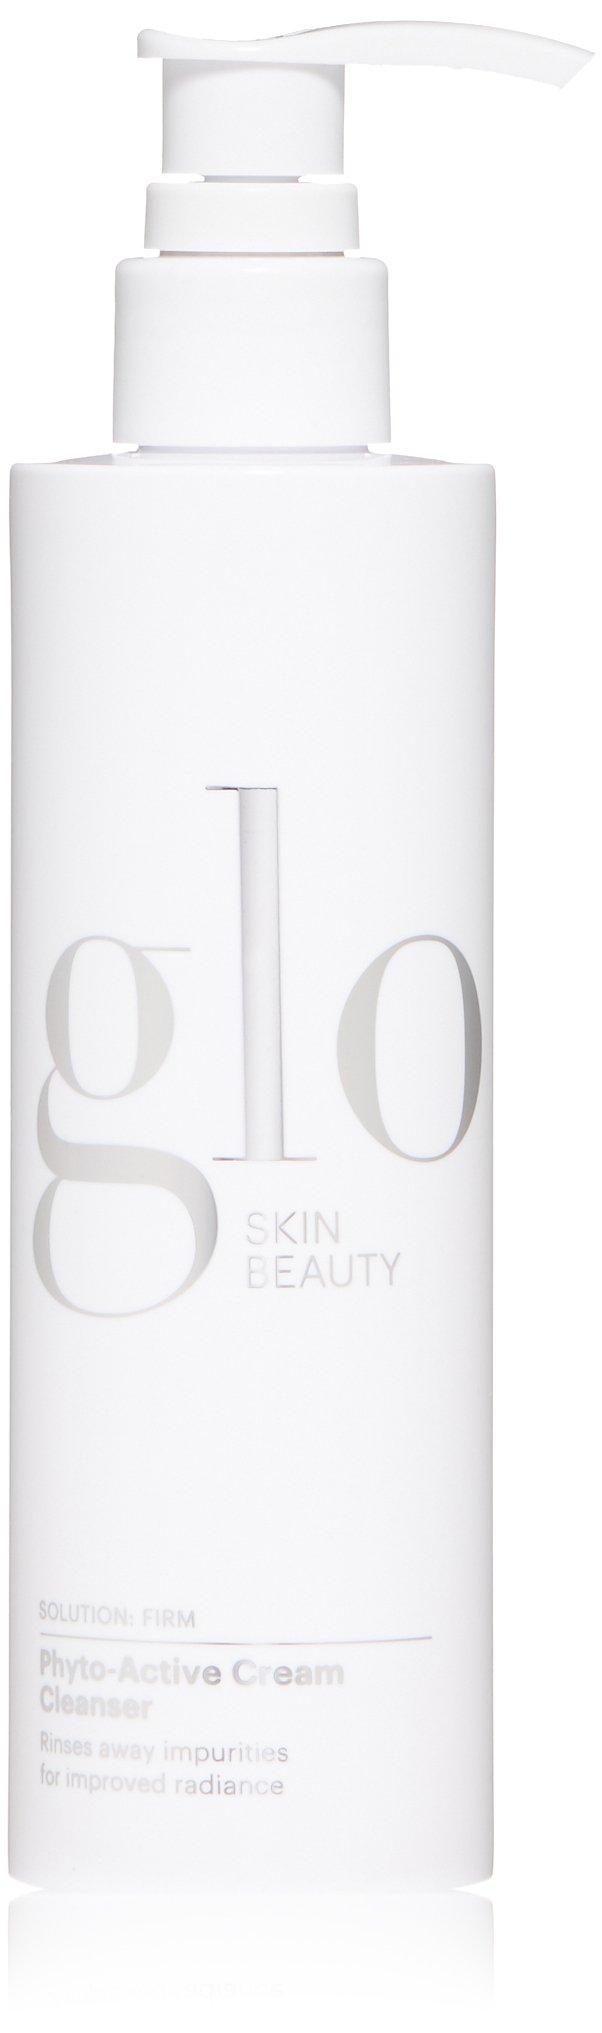 Glo Skin Beauty Phyto-Active Cream Cleanser | Anti-Aging Face Wash with Peptides | Treat Wrinkles and Fine Lines